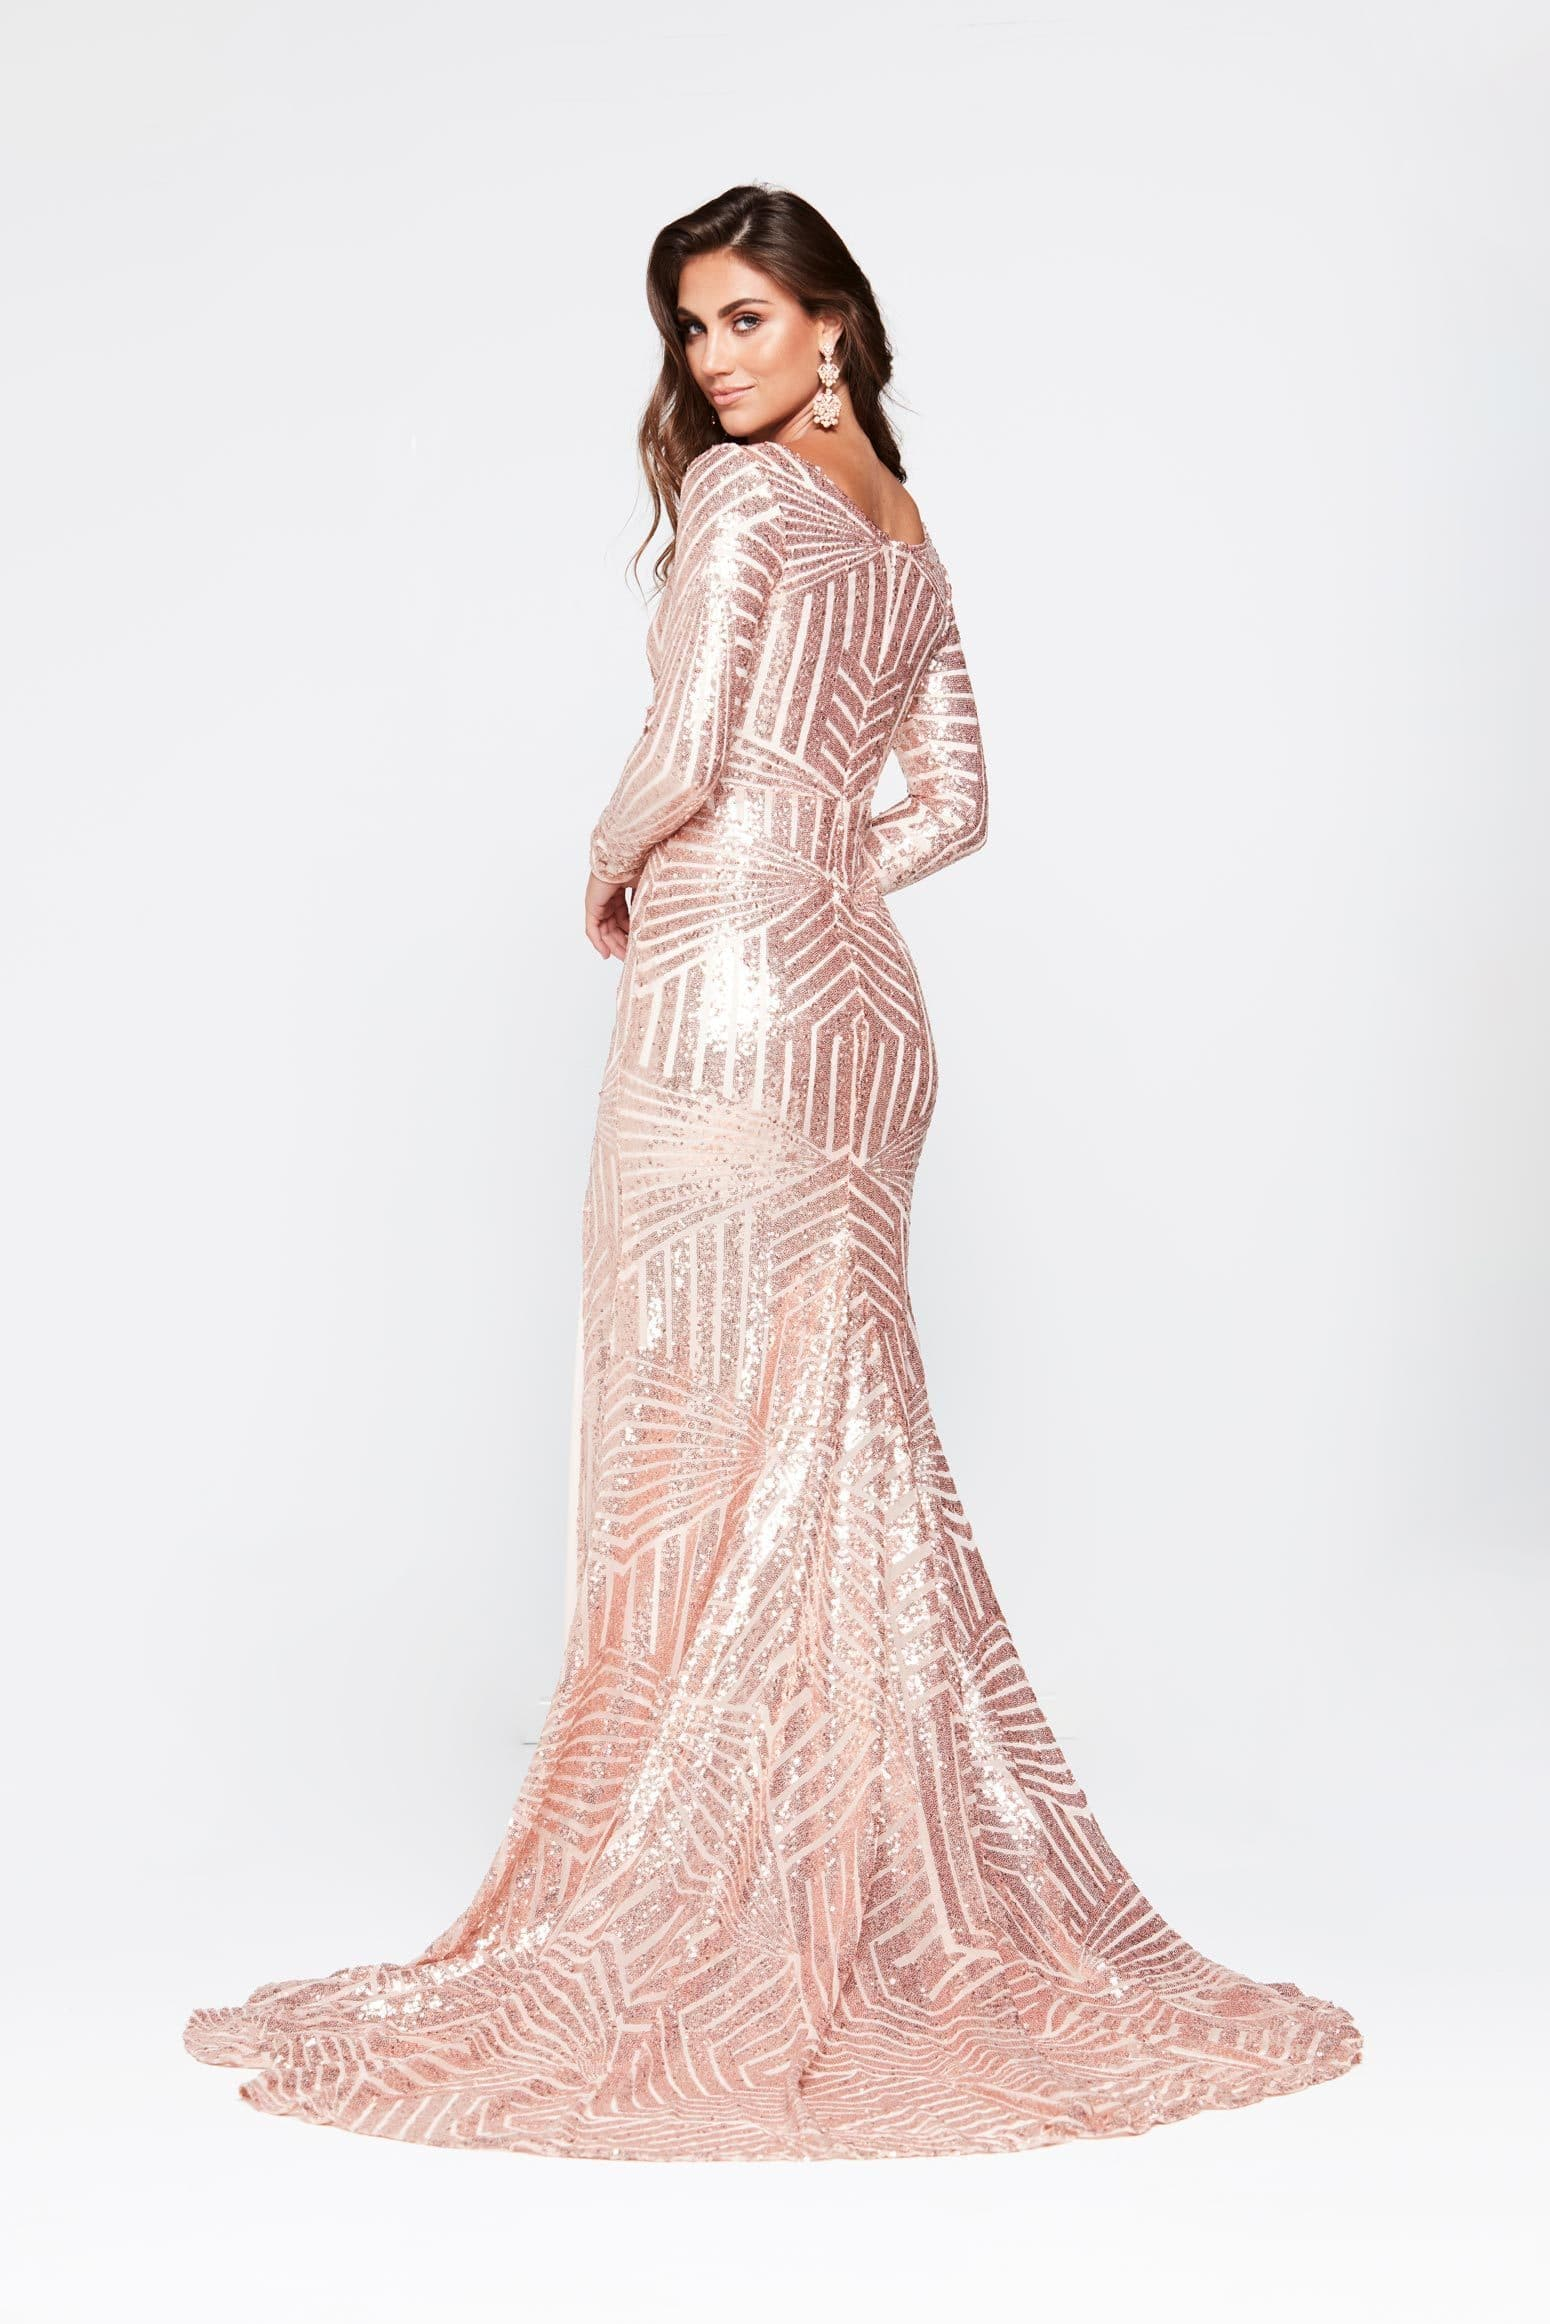 A&N Kaya- Rose Gold Sequin Dress with Long Sleeve and Side Slit